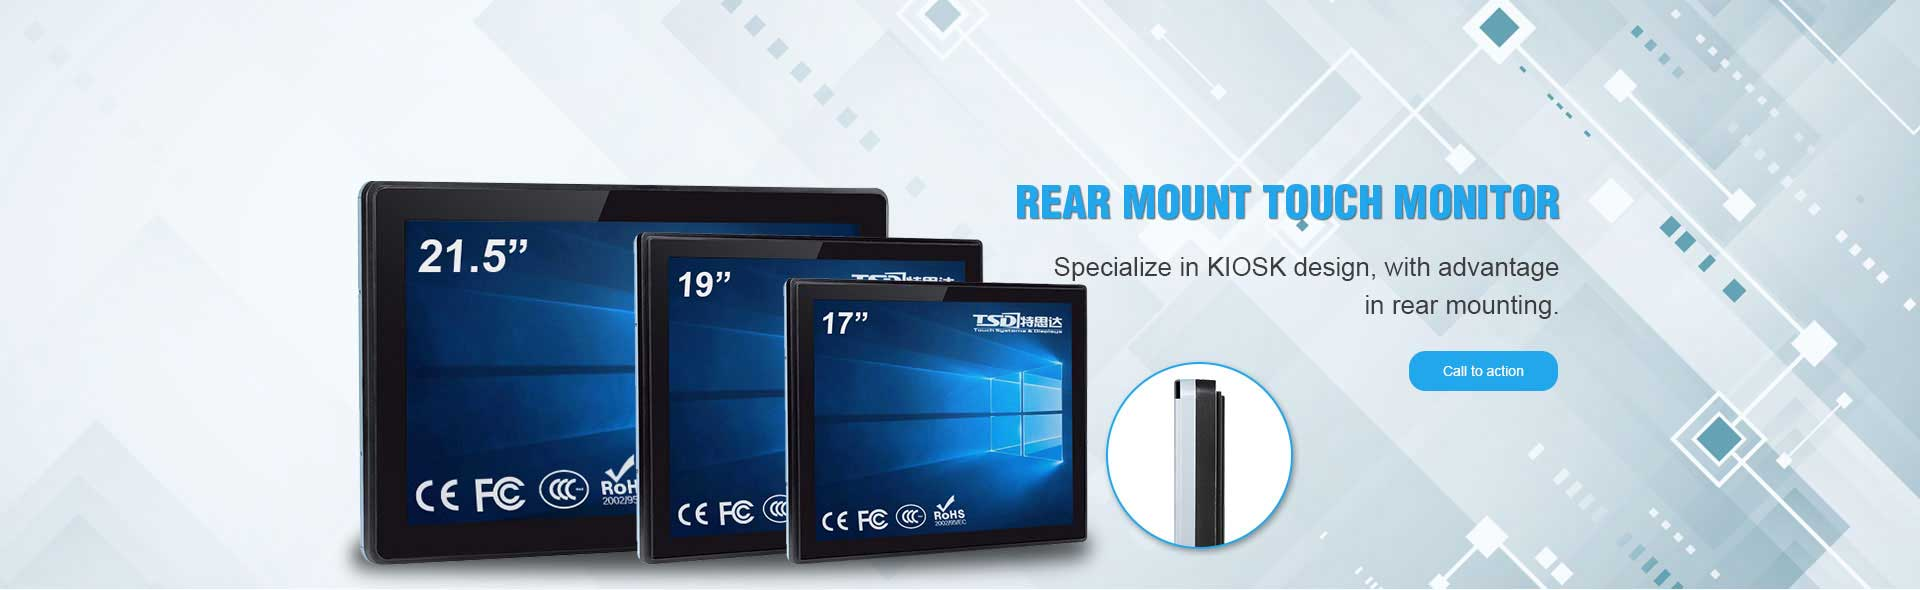 Rear Mount Touch Monitor